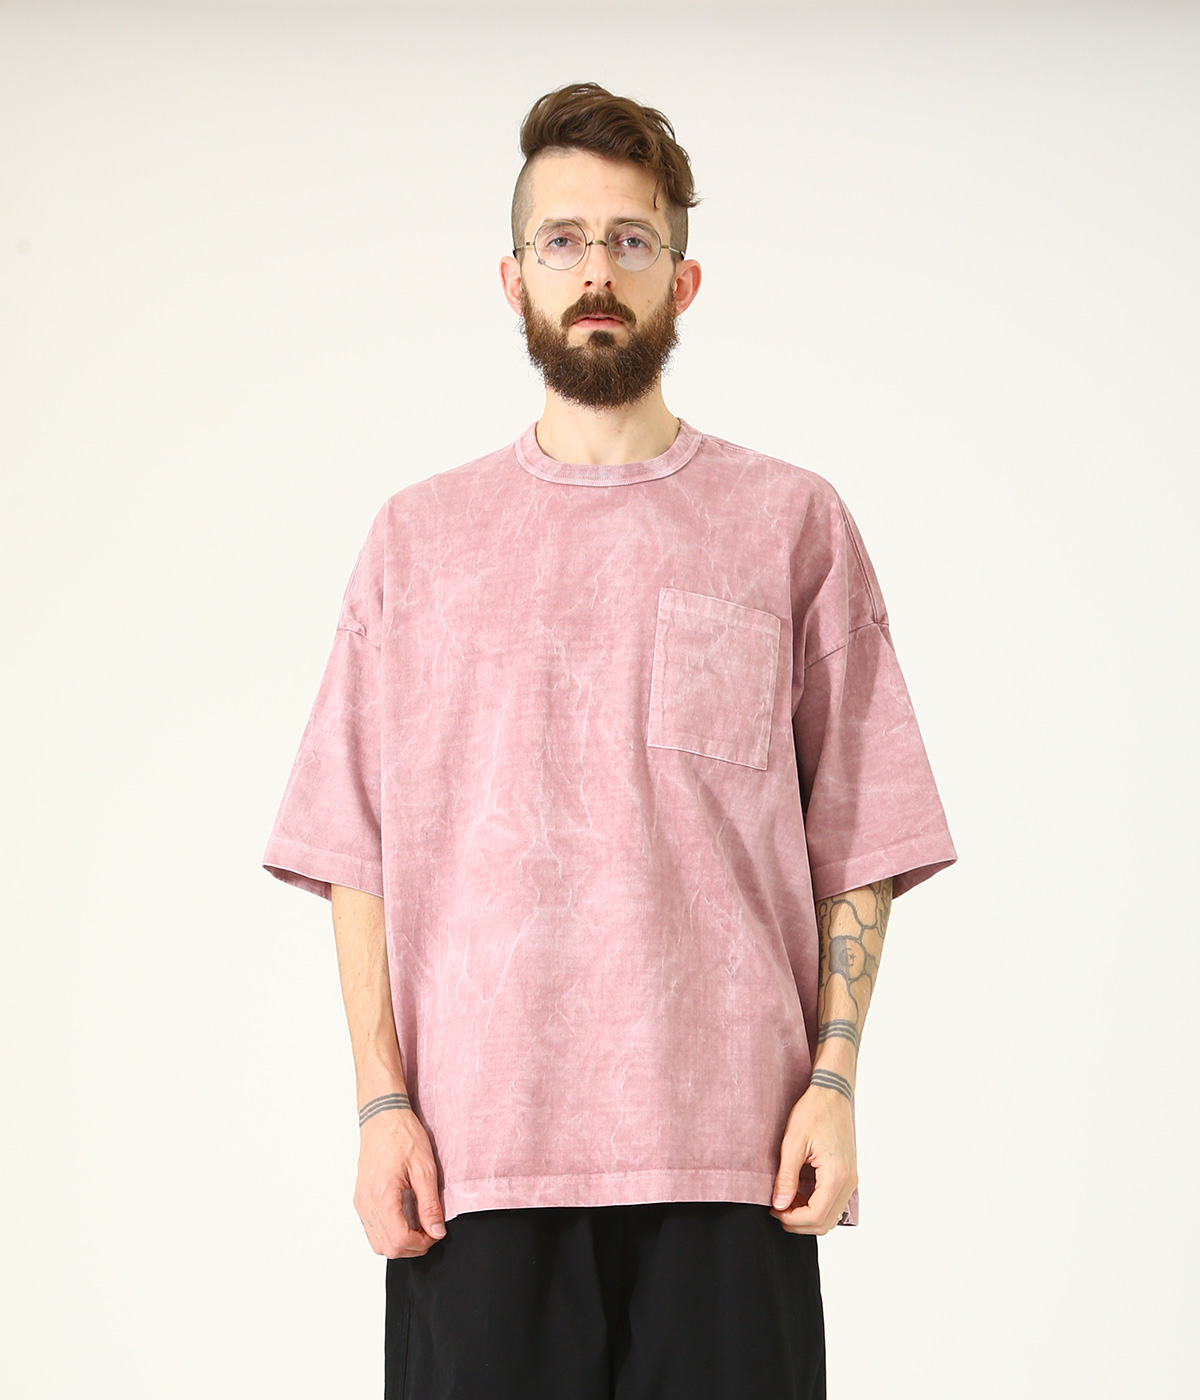 14/- HEAVY COTTON S/S BIG T-SHIRT PIGMENT DYED